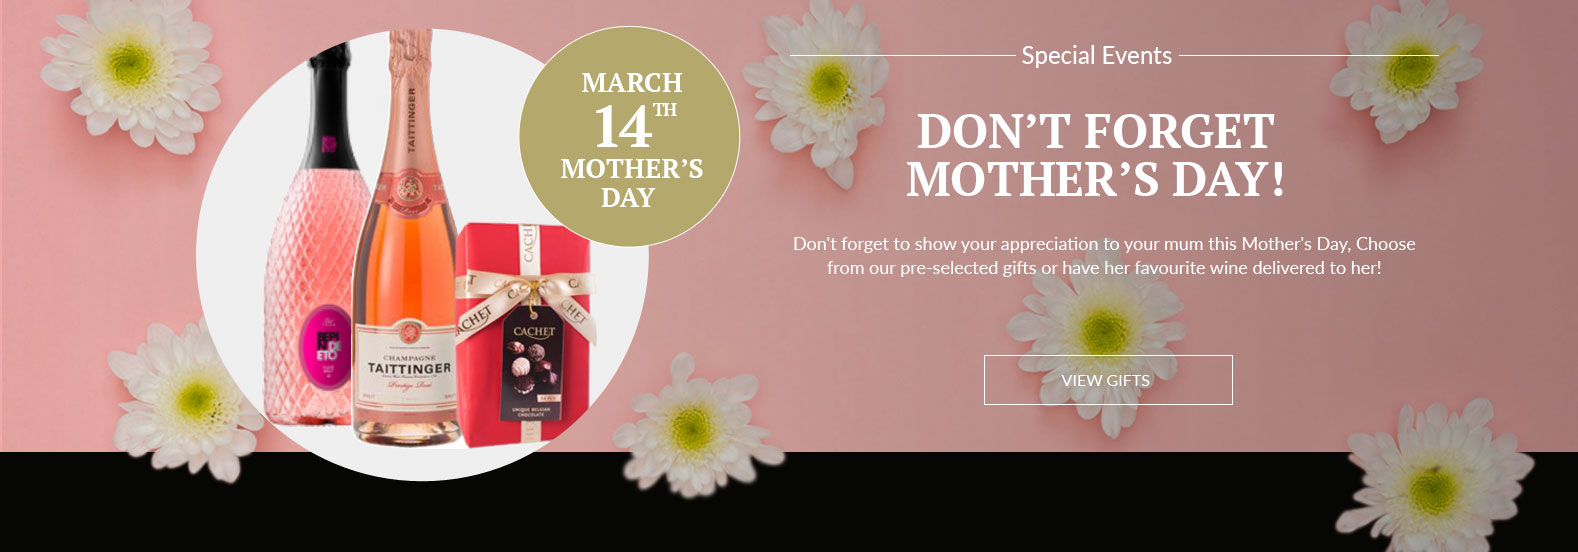 A selection of mother's day gifts, including champagne and chocolates in front of a pink background with daisies scattered on it.